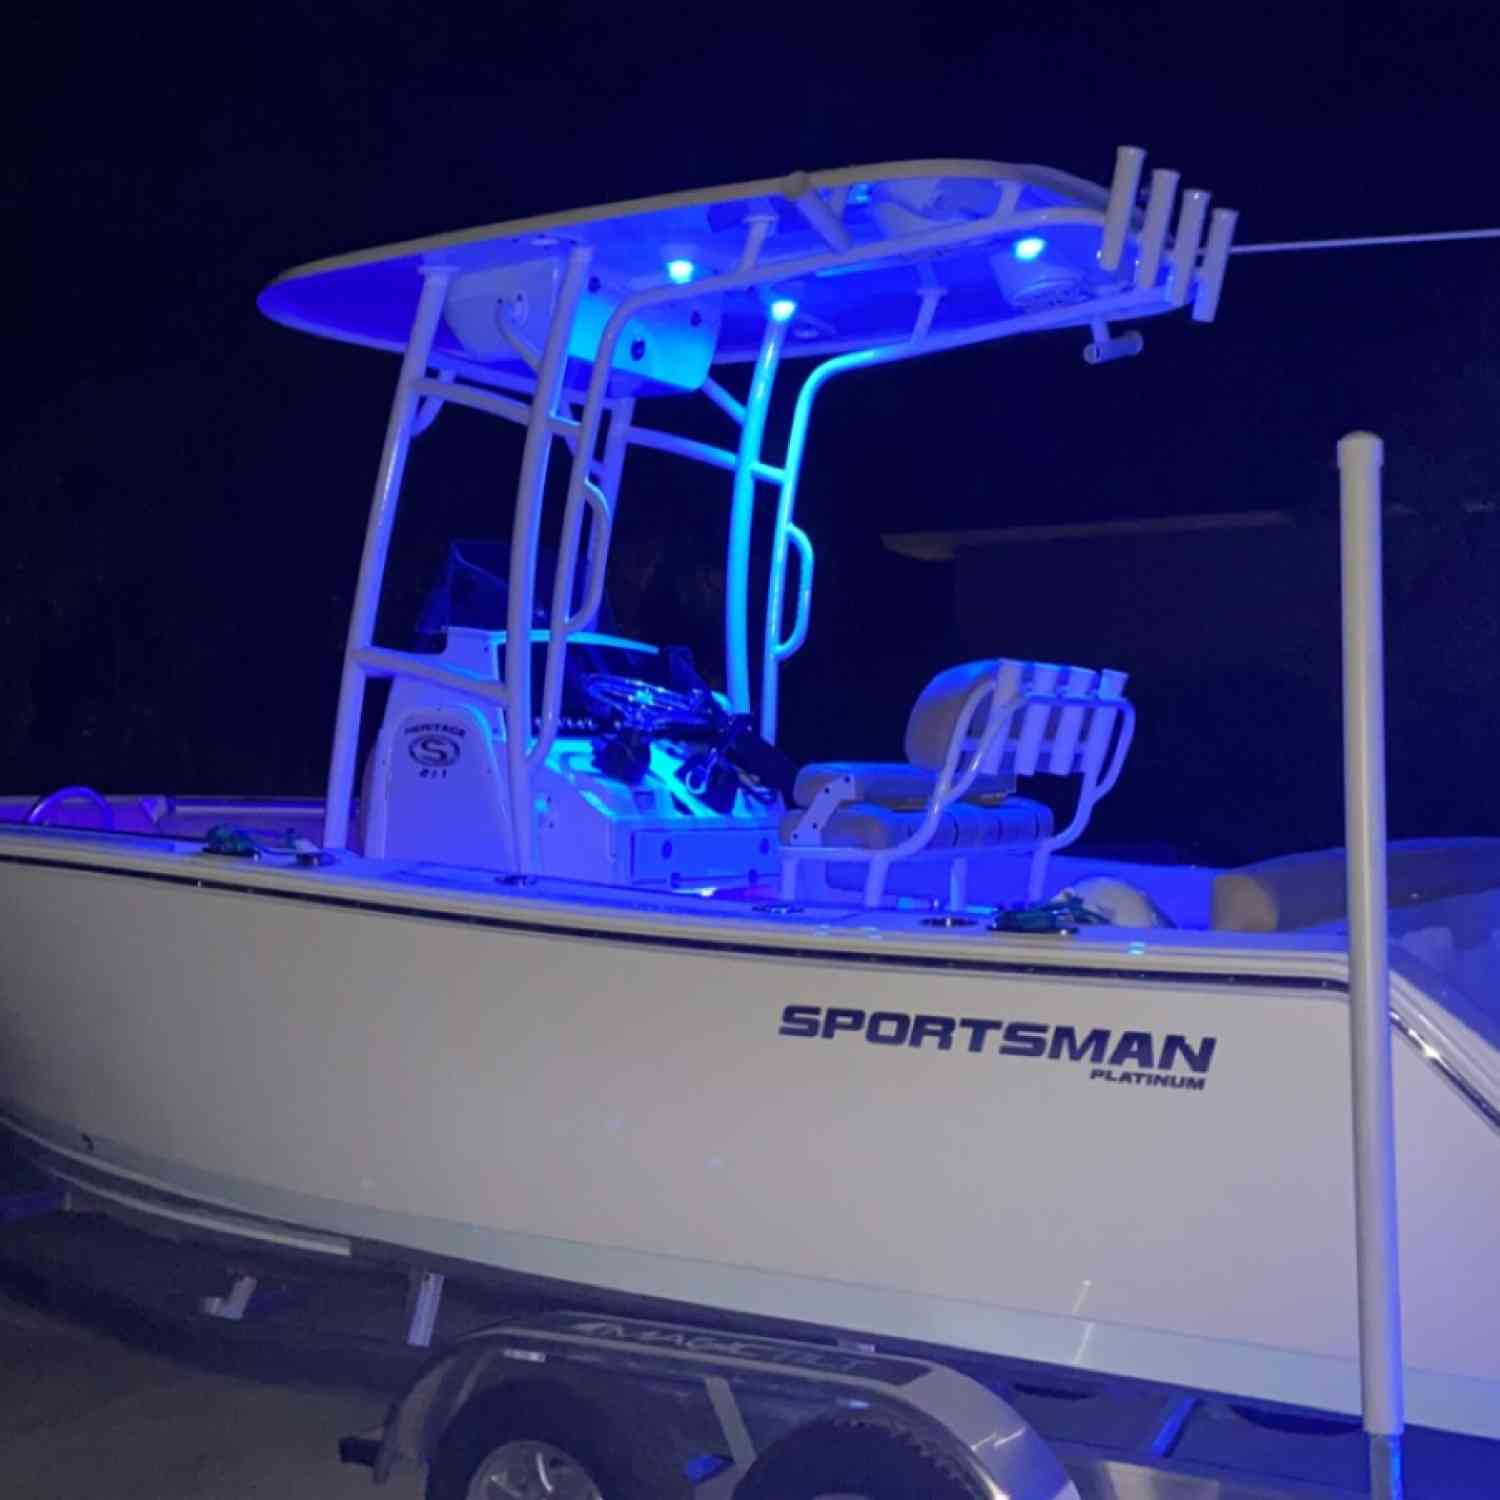 Title: Midnight Blues - On board their Sportsman Heritage 211 Center Console - Location: Skidaway Island, Ga. Participating in the Photo Contest #SportsmanMay2020